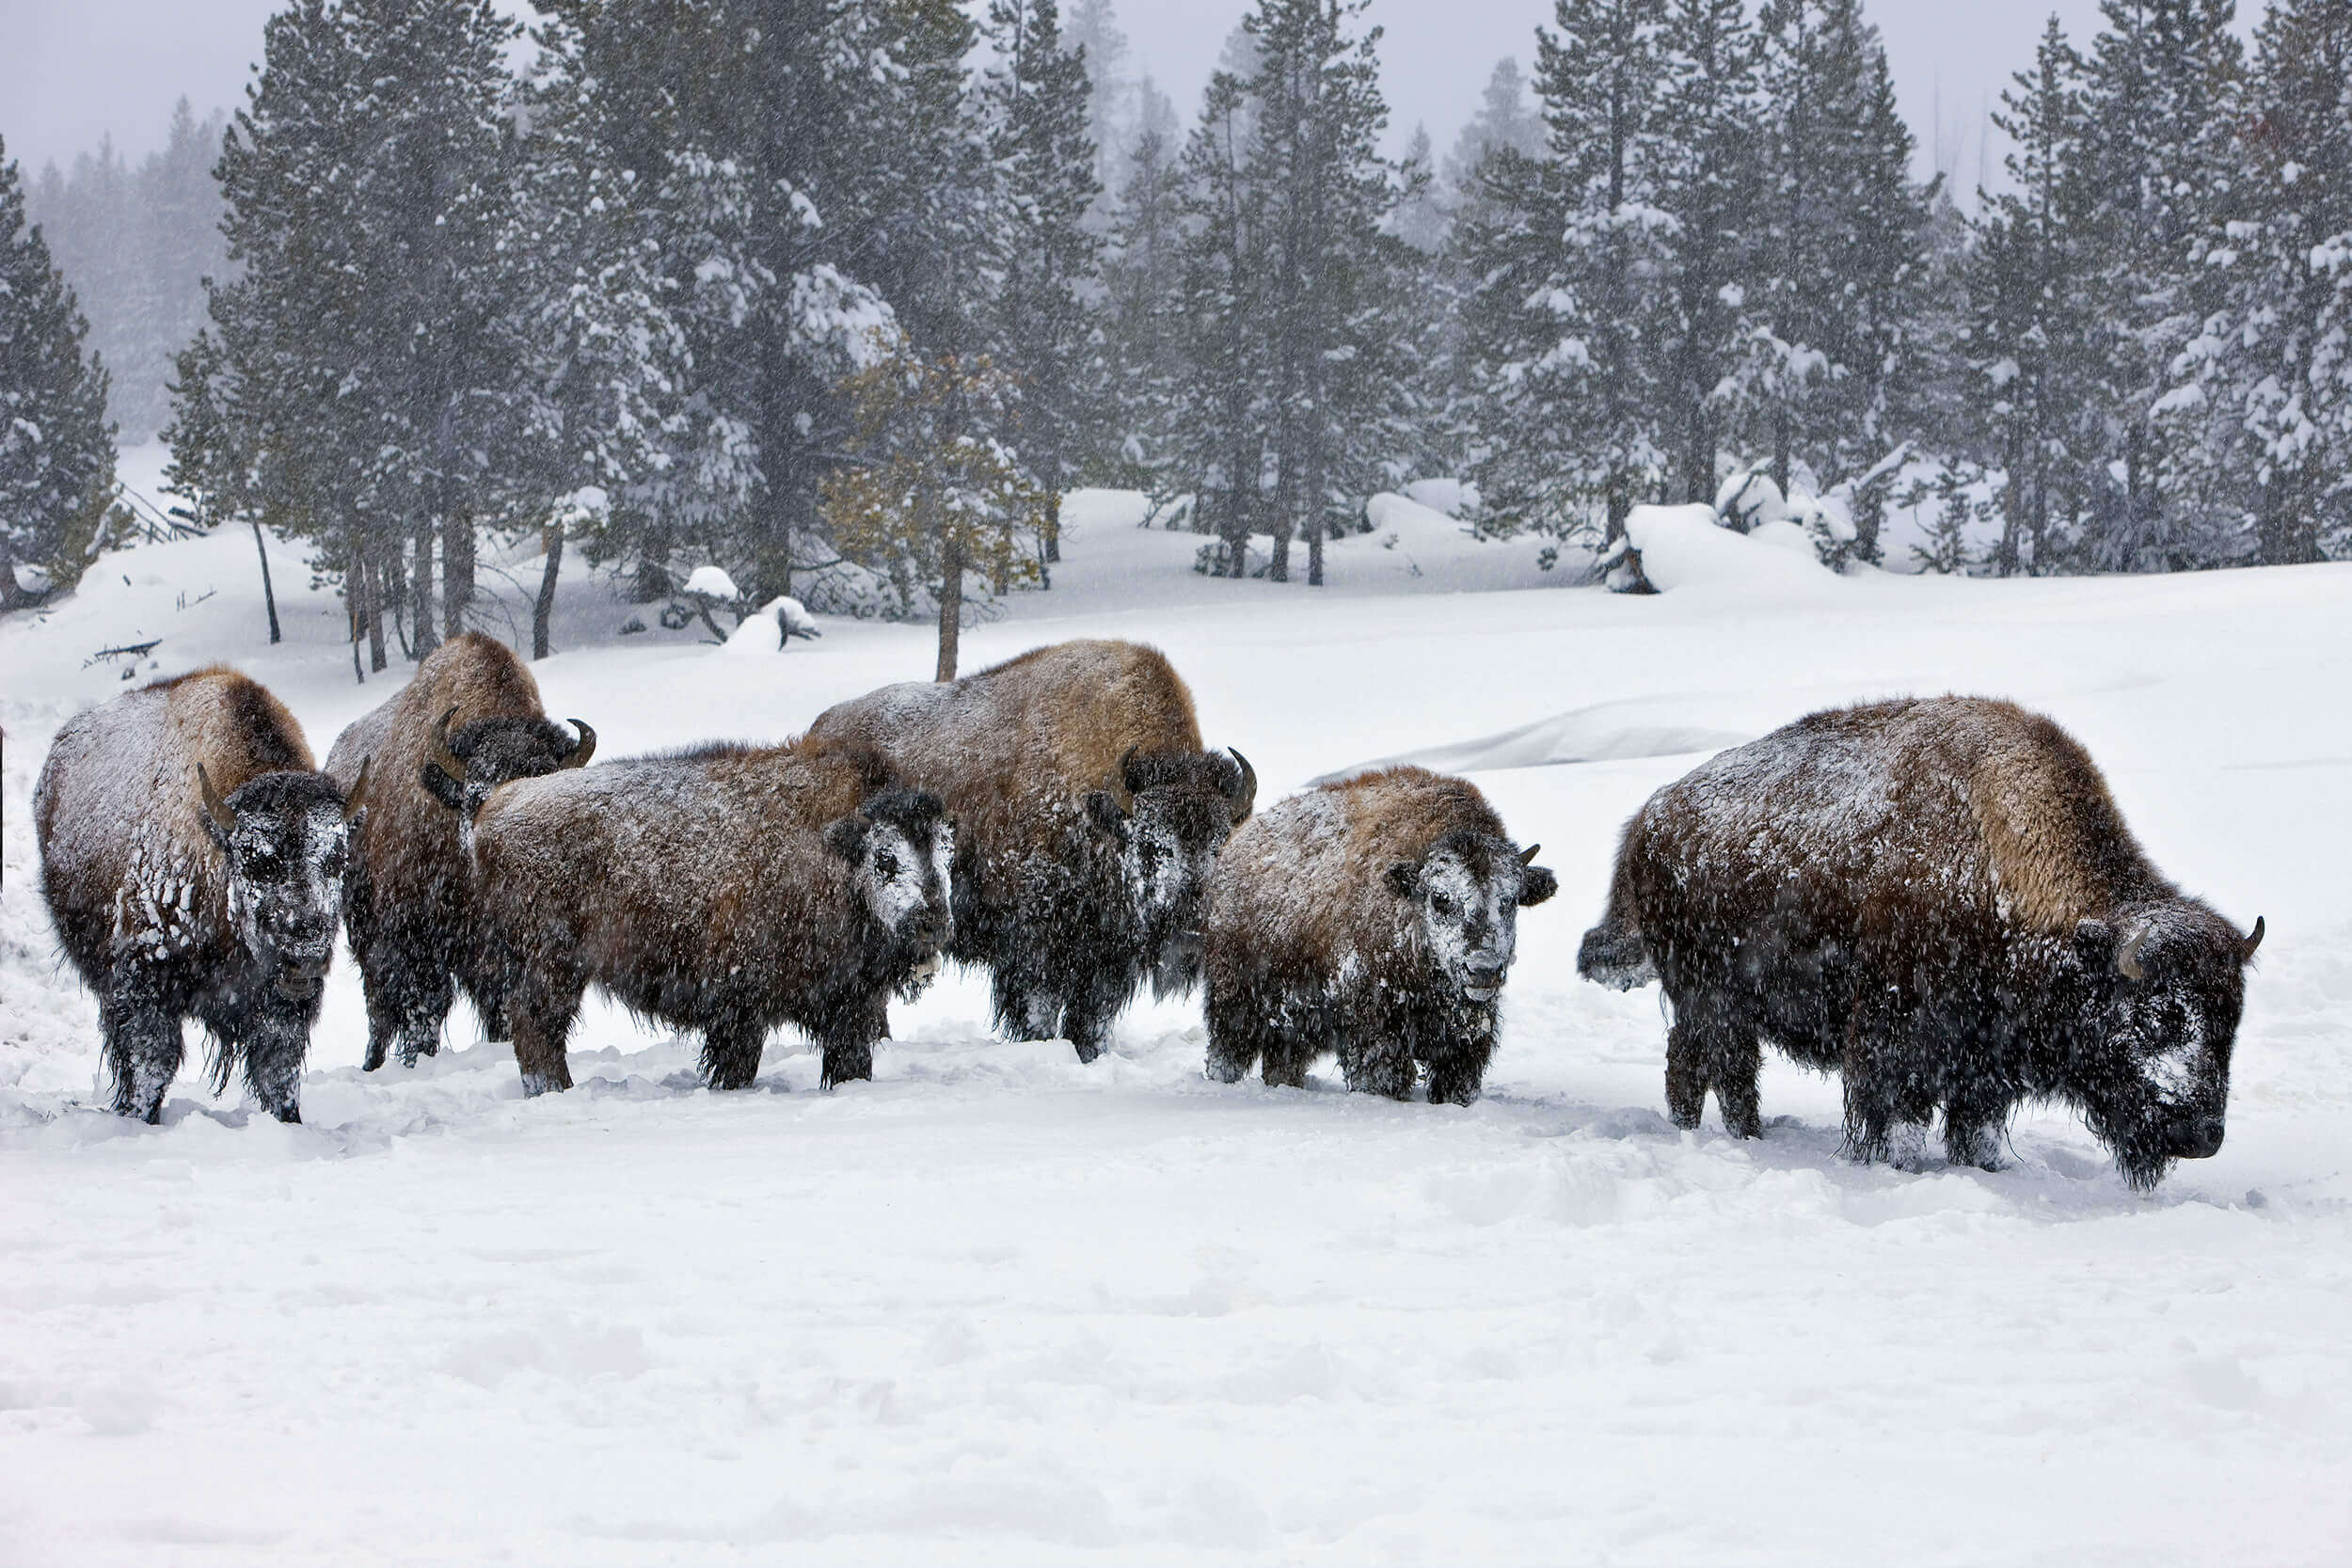 how do bison adapt to snow